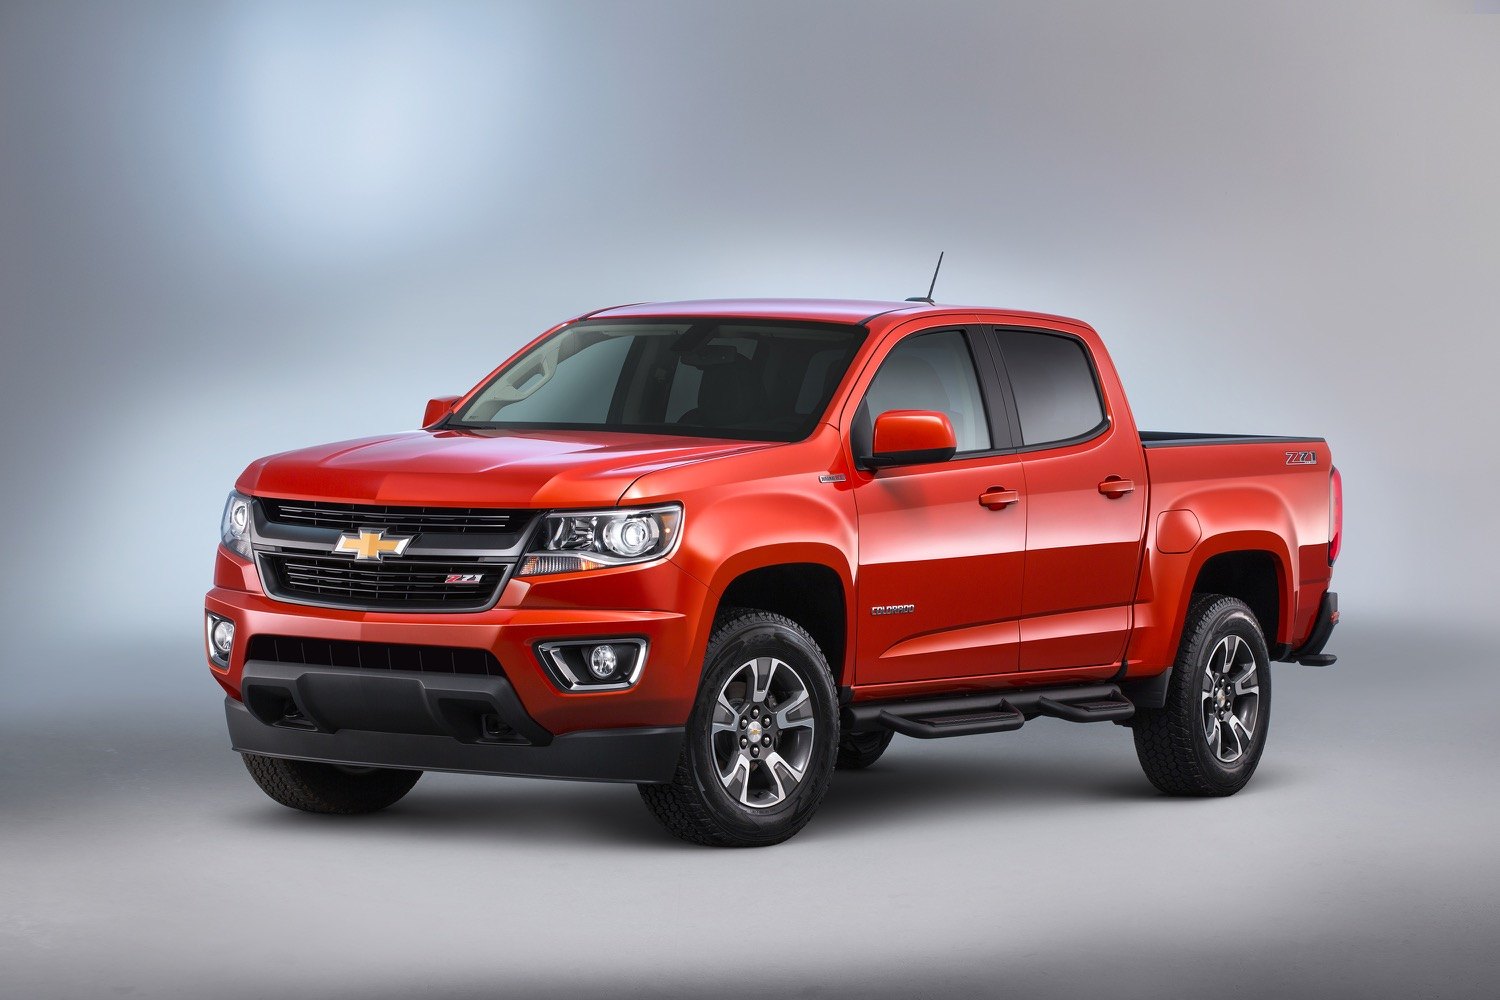 2016 chevrolet colorado chevy gas mileage the car connection. Black Bedroom Furniture Sets. Home Design Ideas